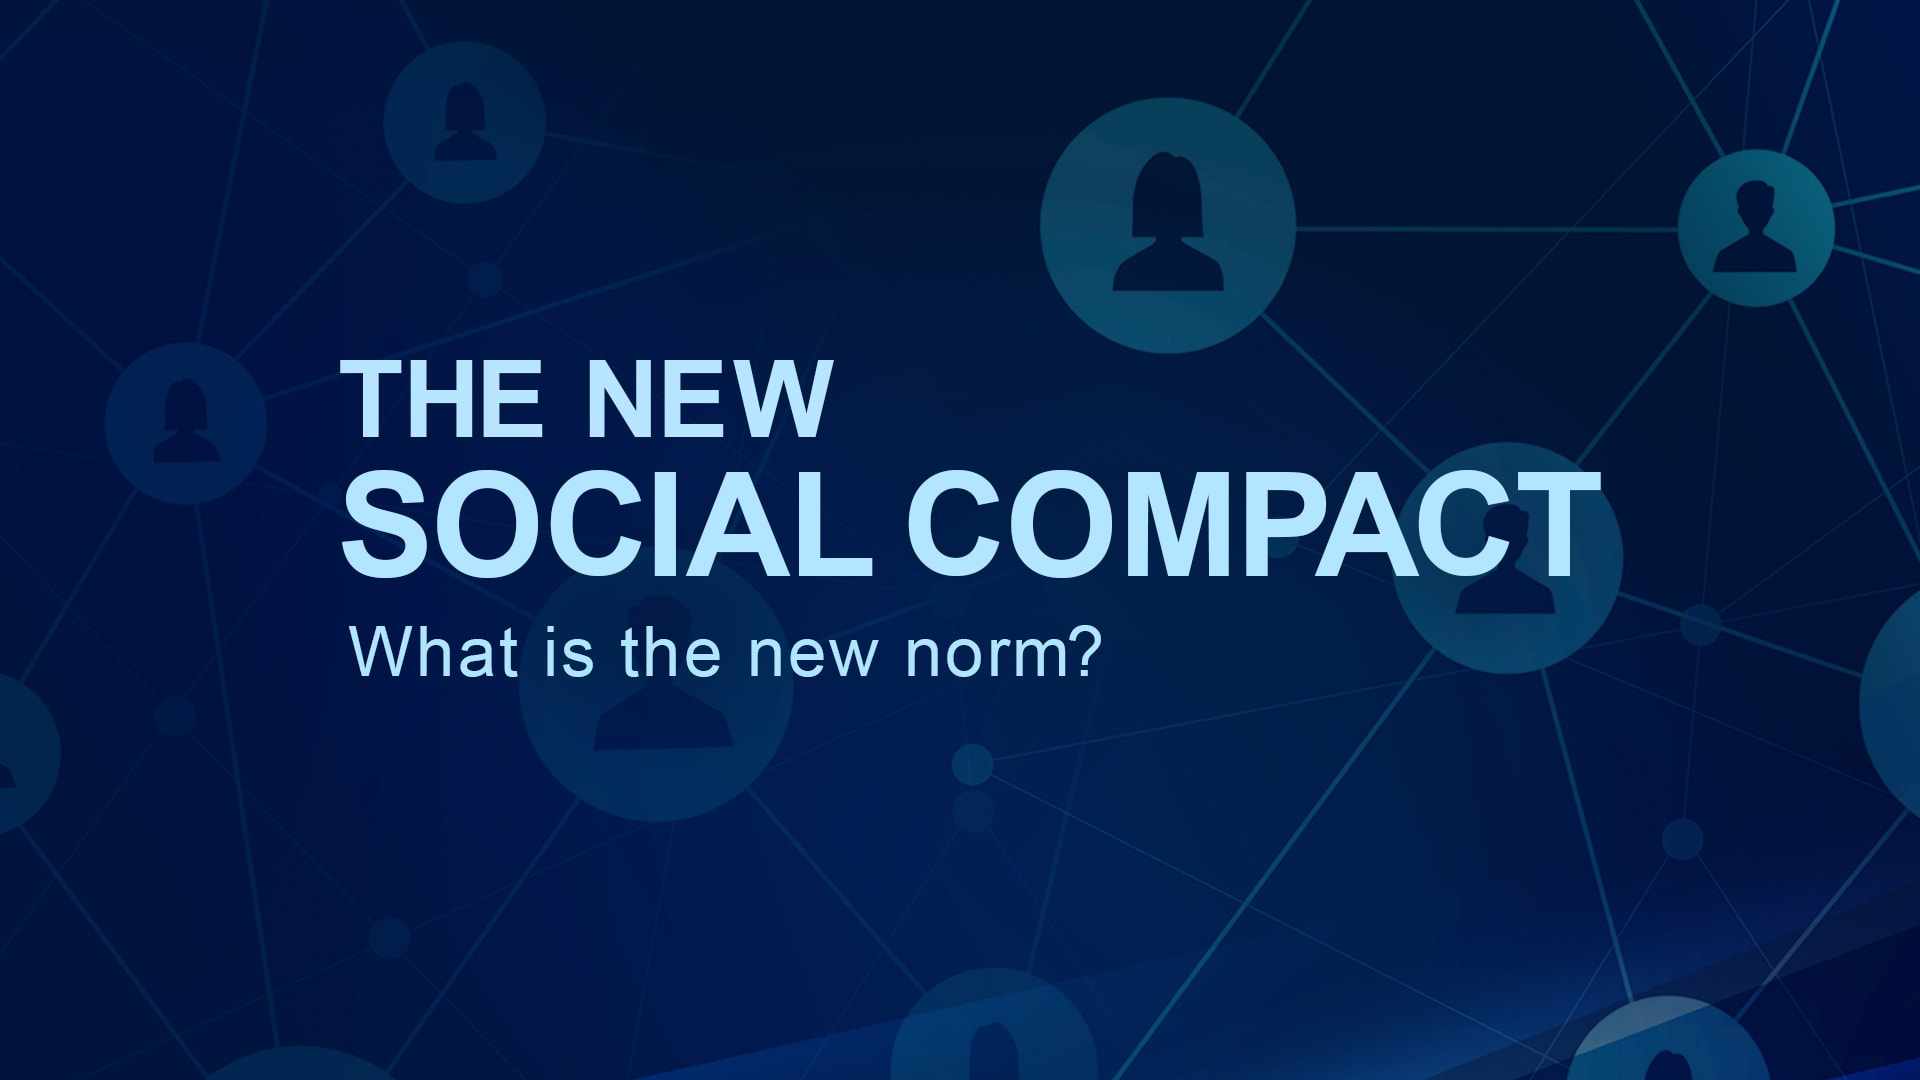 The New Social Compact